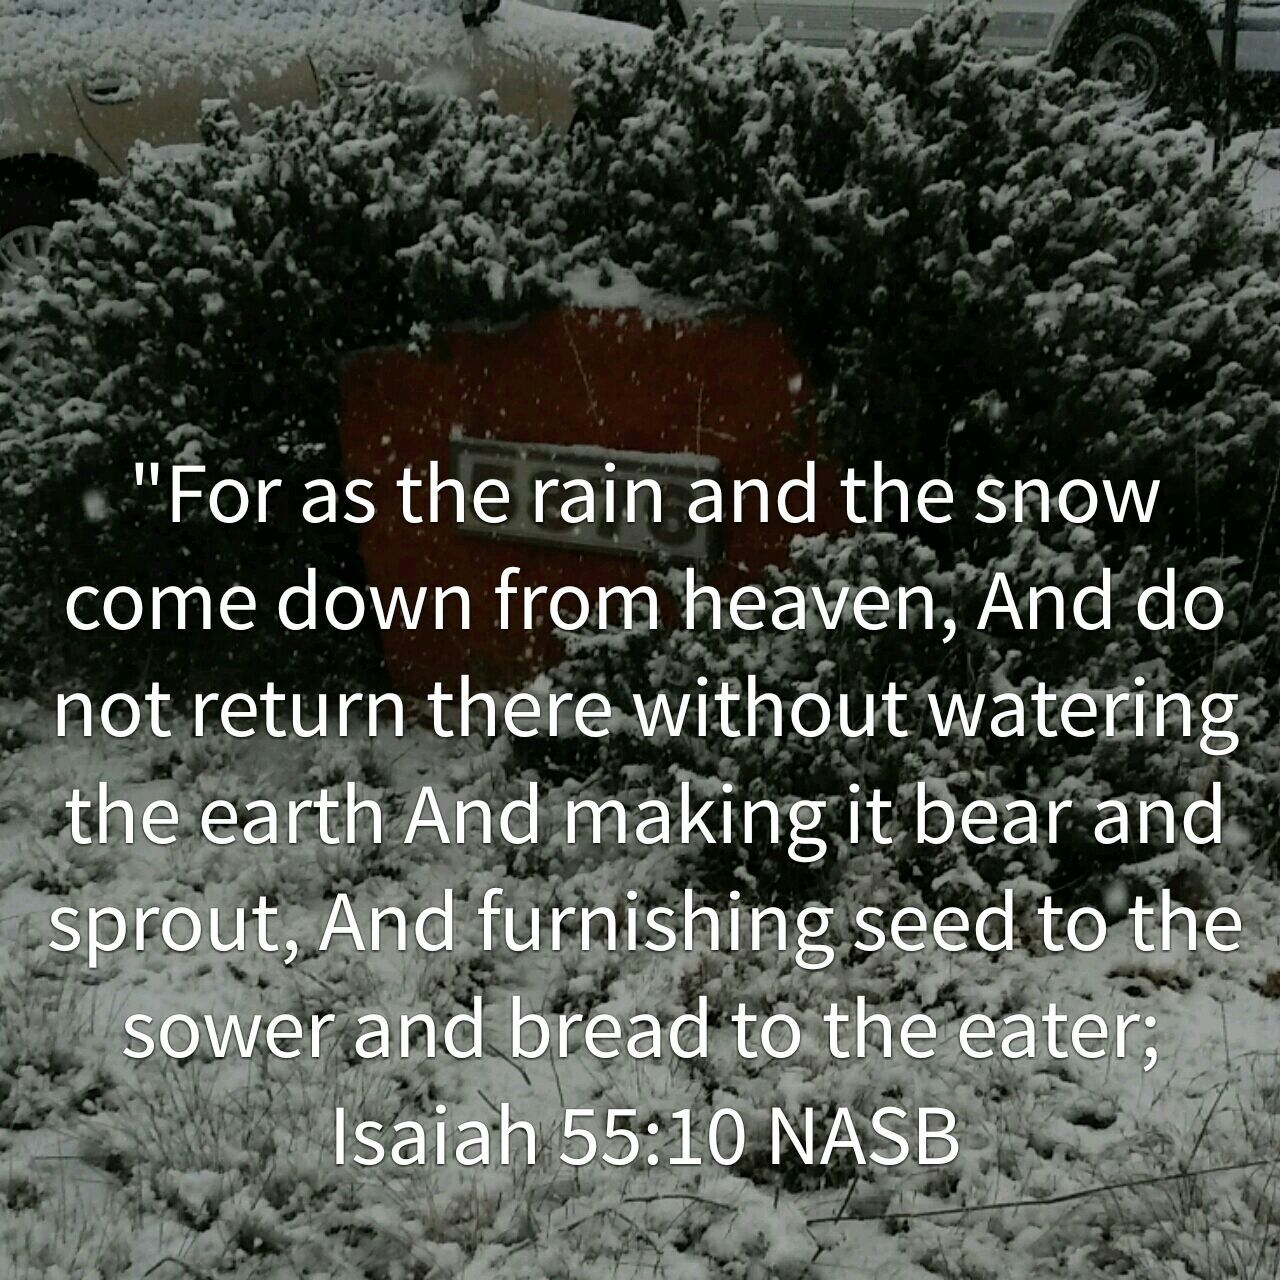 Rain and the snow e down from heaven